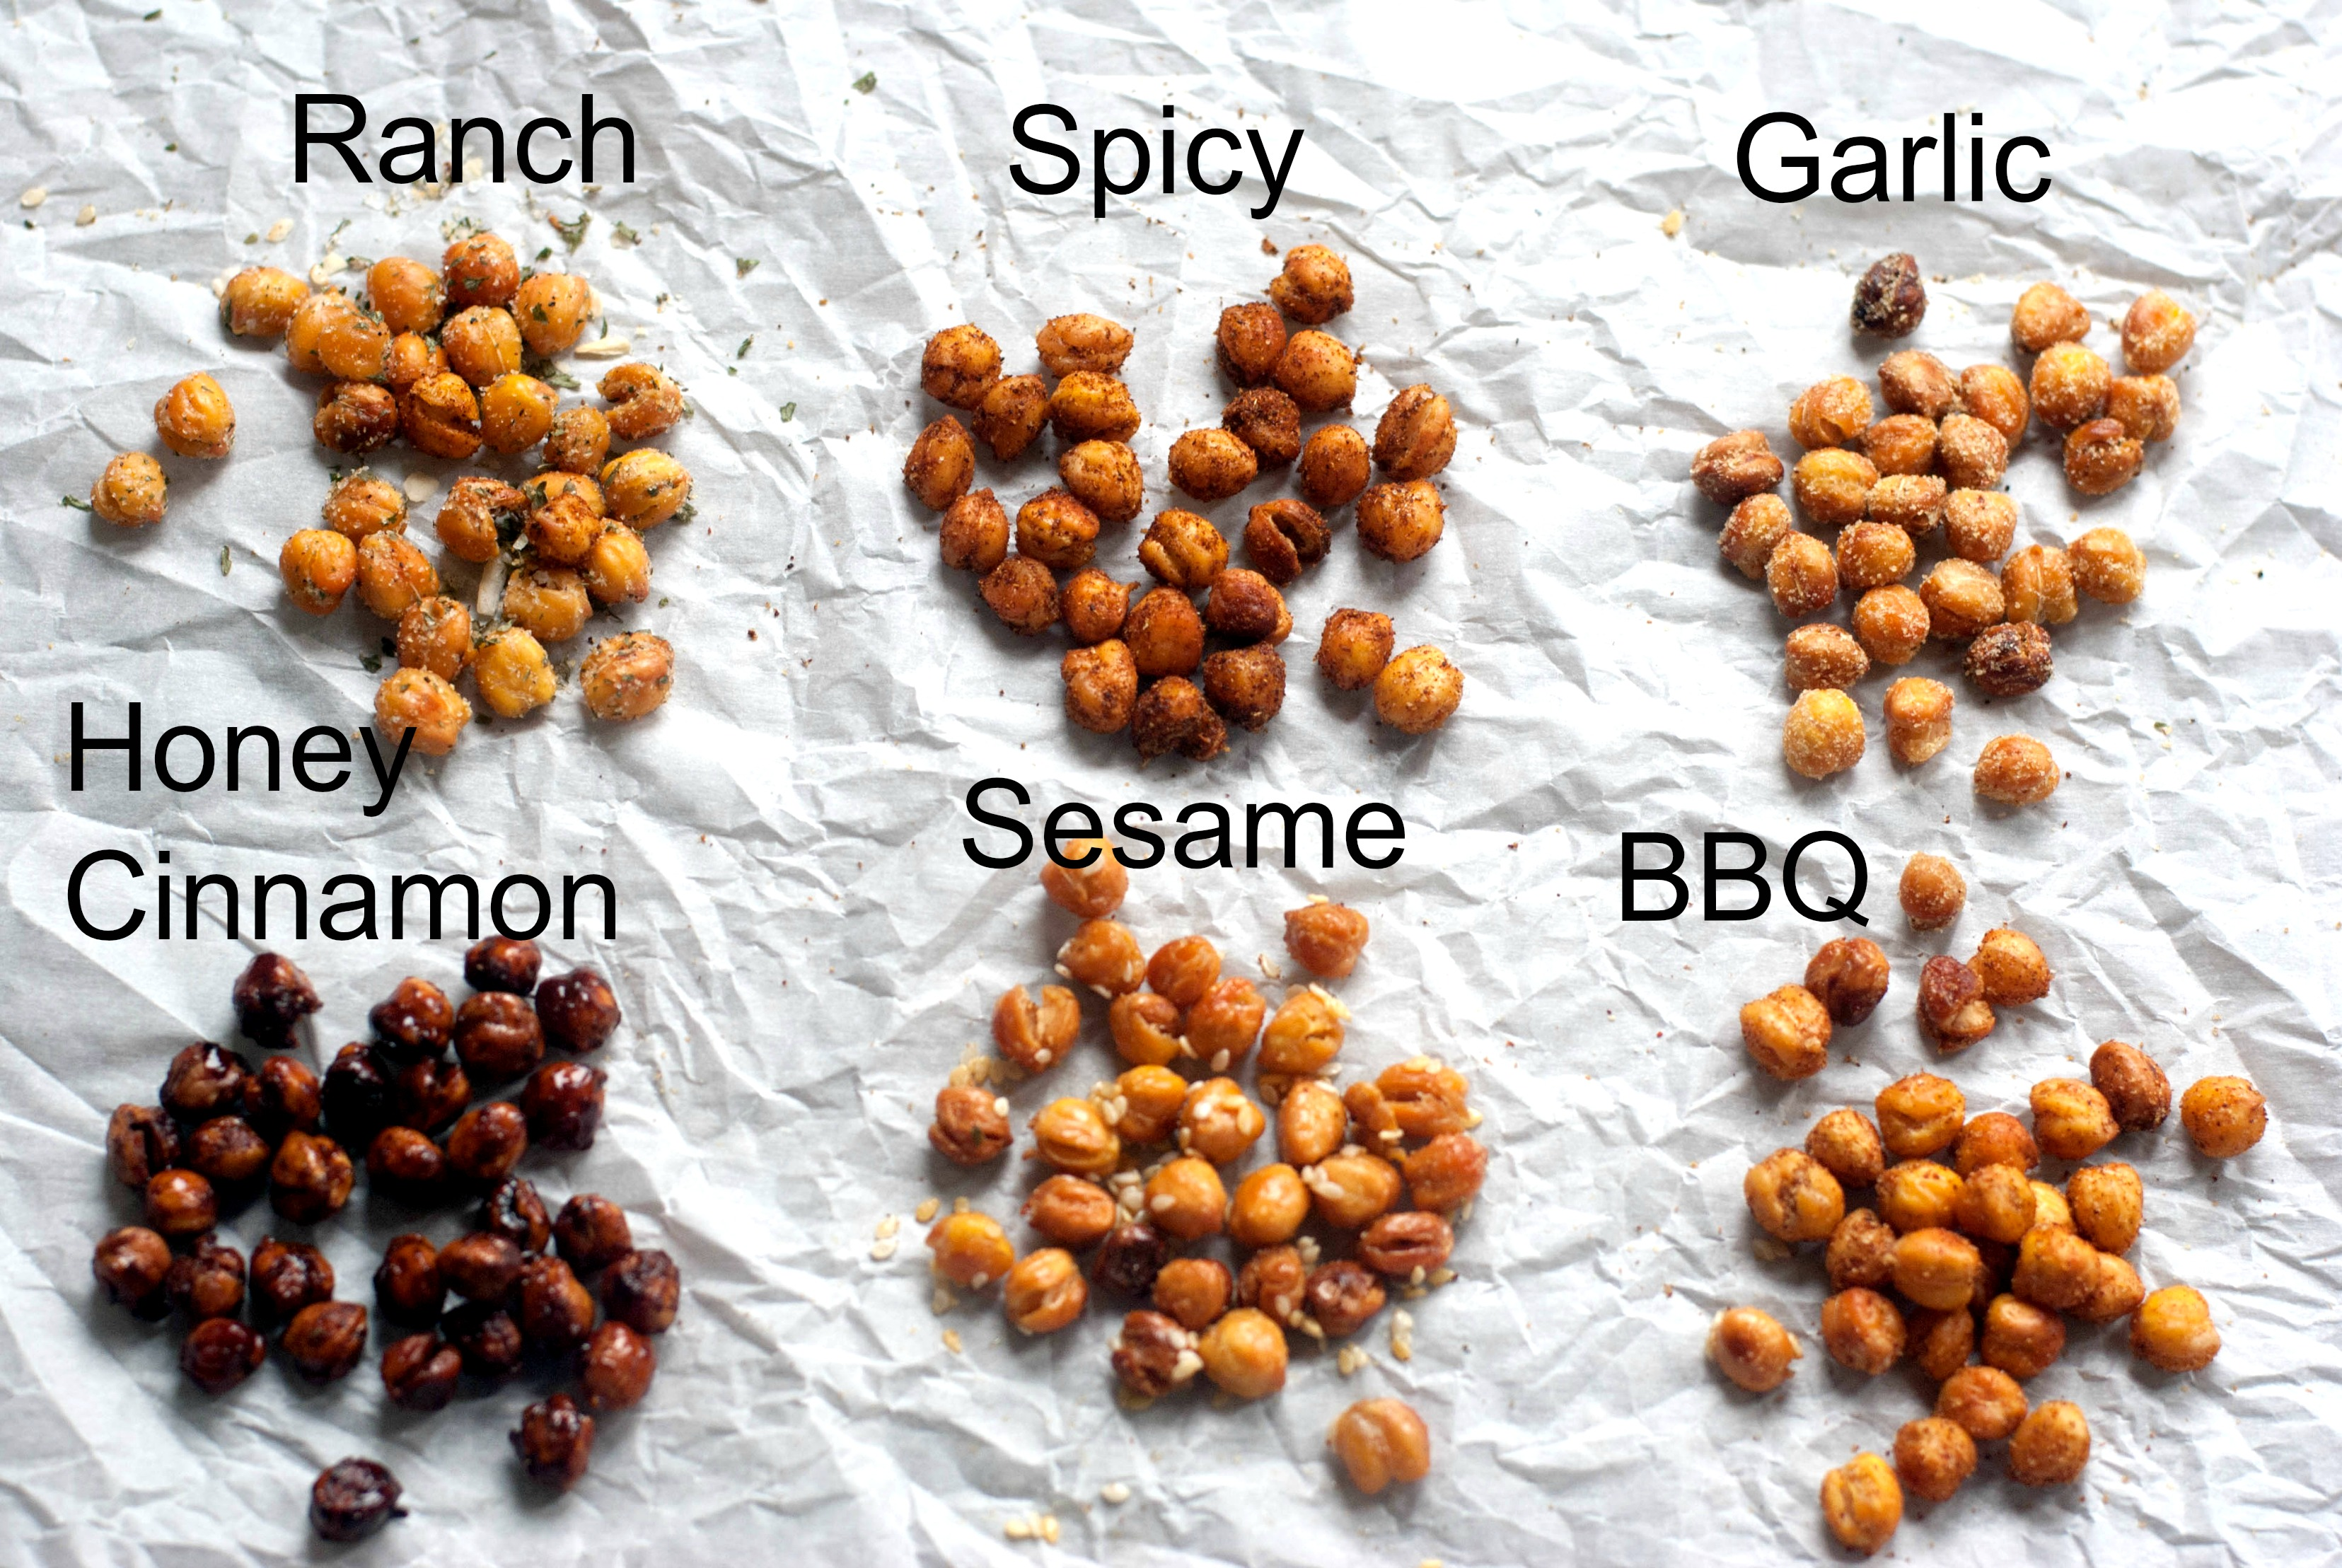 Roasted Chickpeas Recipe - TGIF - This Grandma is Fun